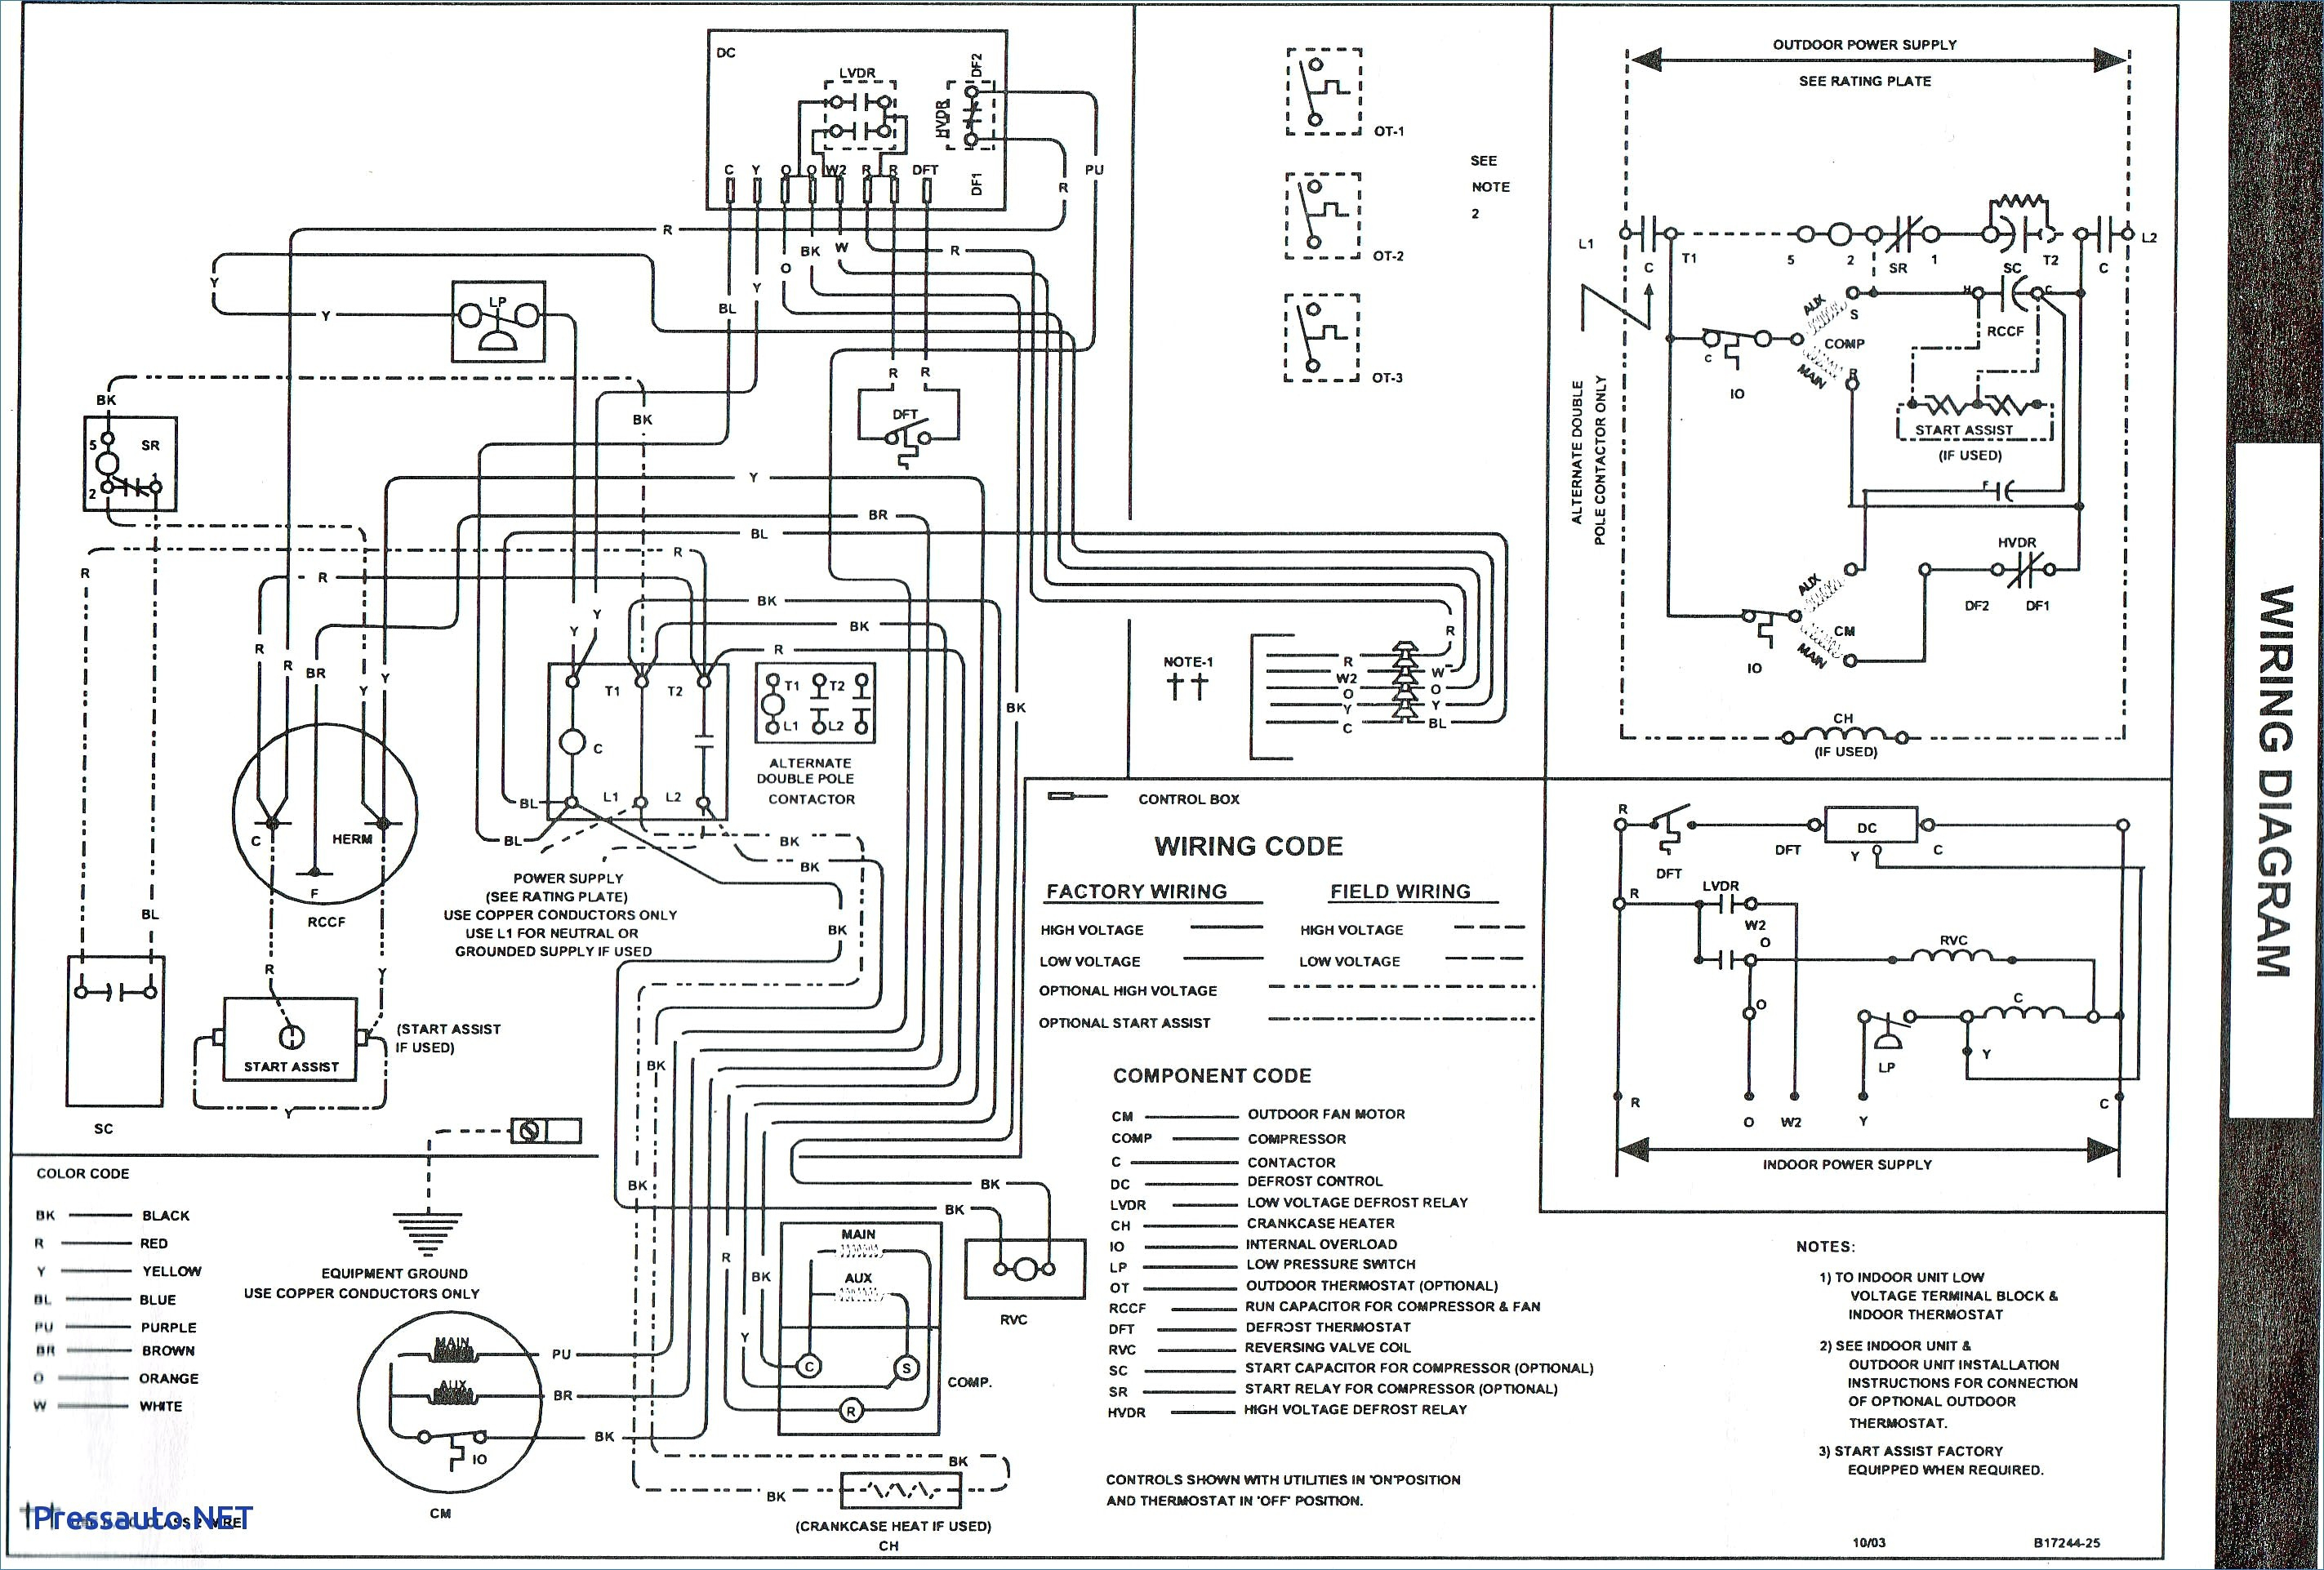 Goodman Ar36 1 Wiring Diagram from wholefoodsonabudget.com